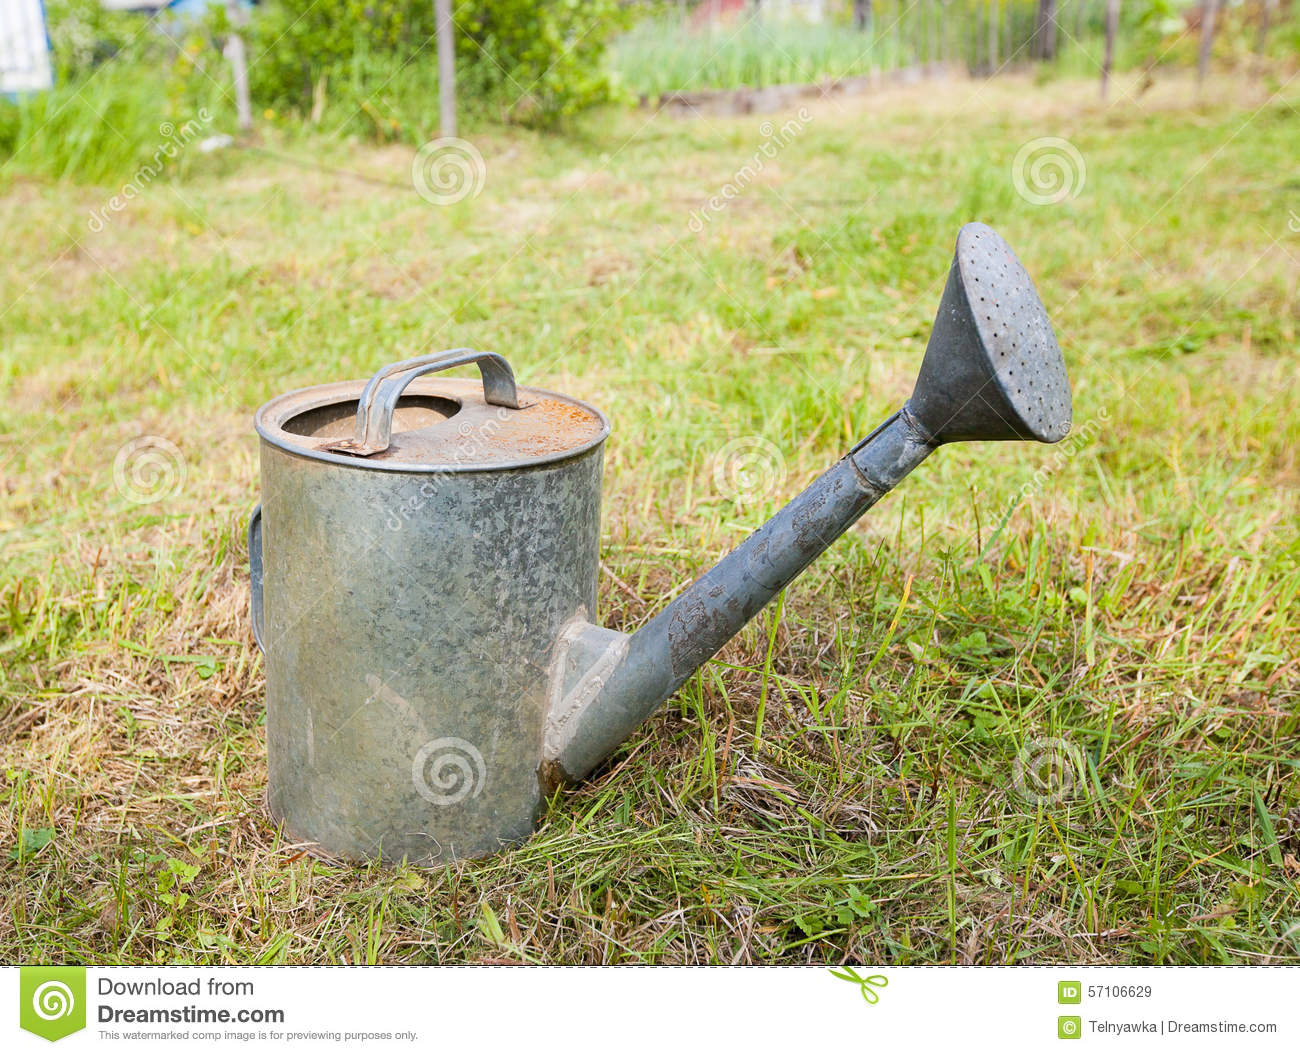 Old Rusty Watering Can Standing On Grass Stock Photo